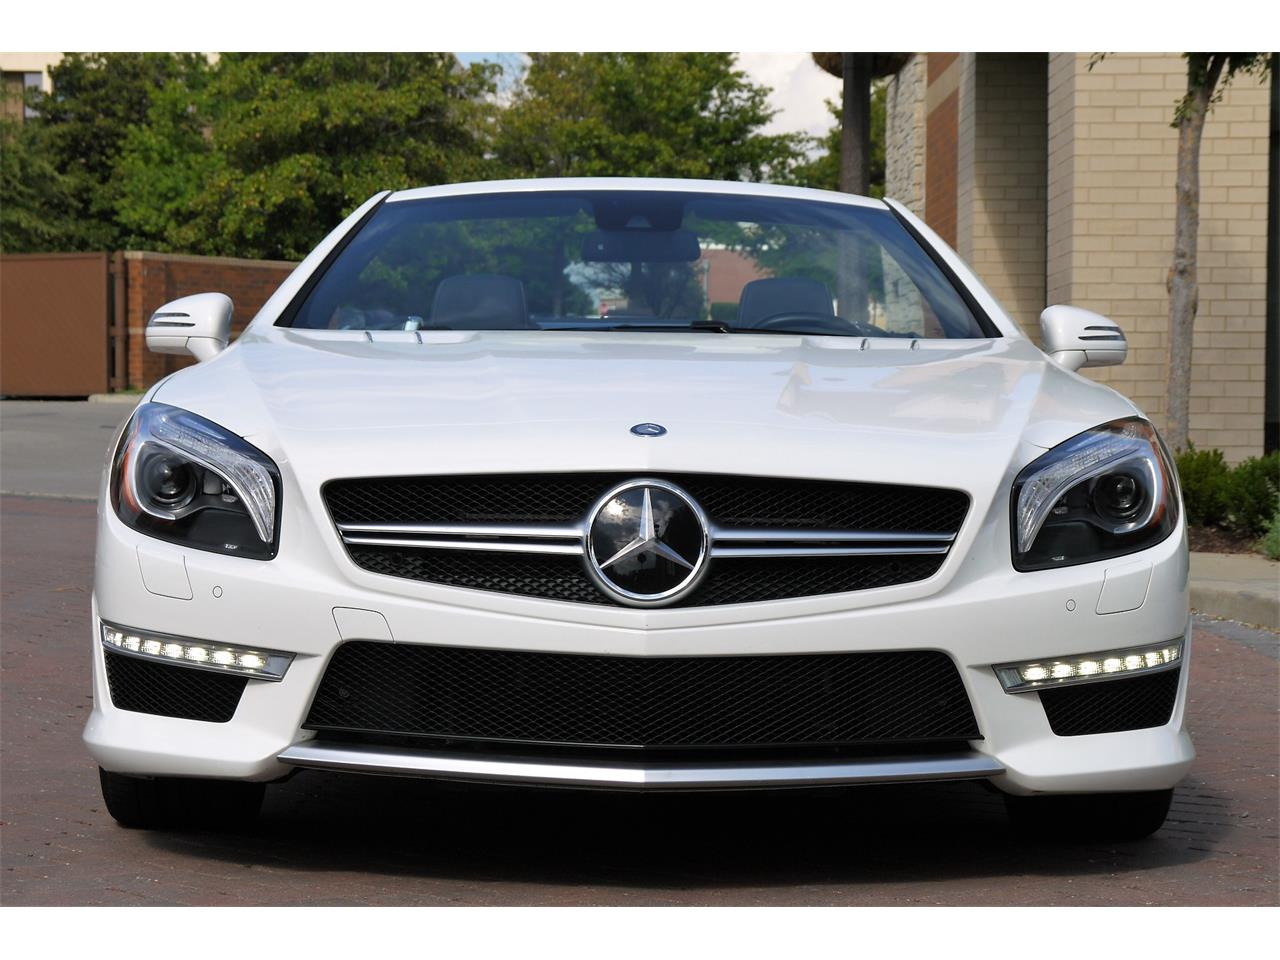 Large Picture of 2014 SL-Class located in Brentwood Tennessee Offered by Arde Motorcars - ONZC